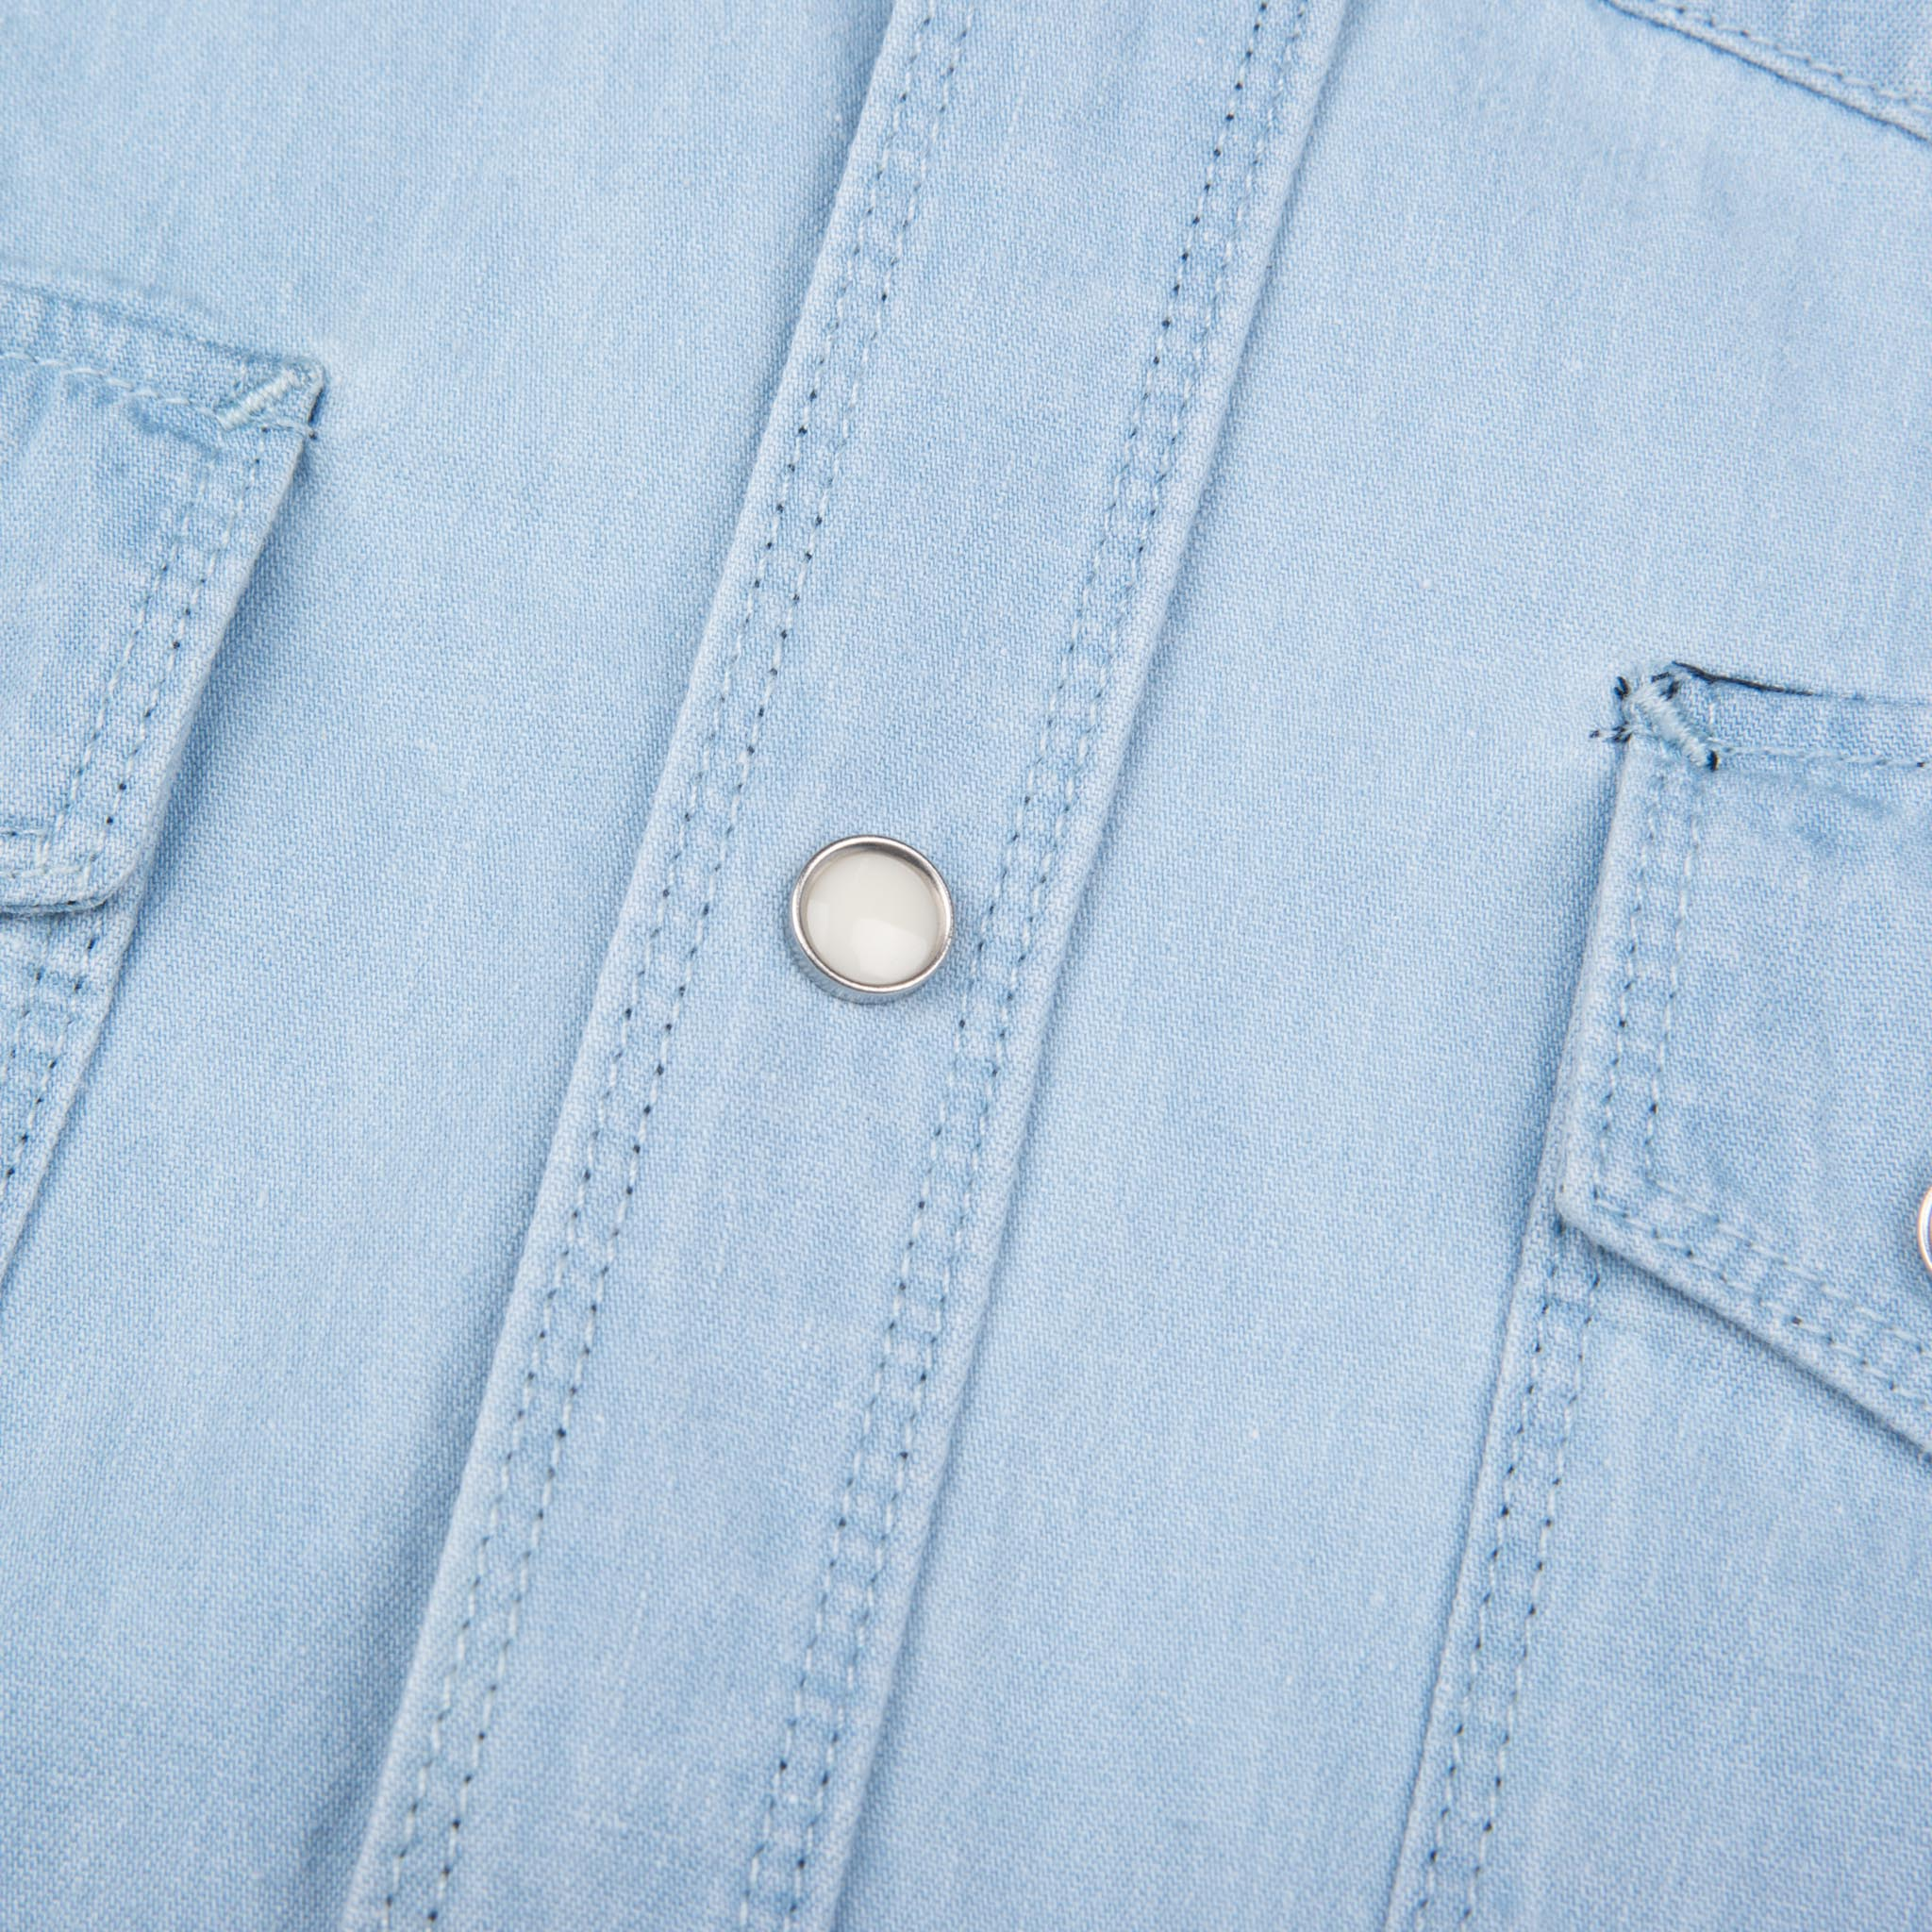 Calico <span> Bleached Denim </span>